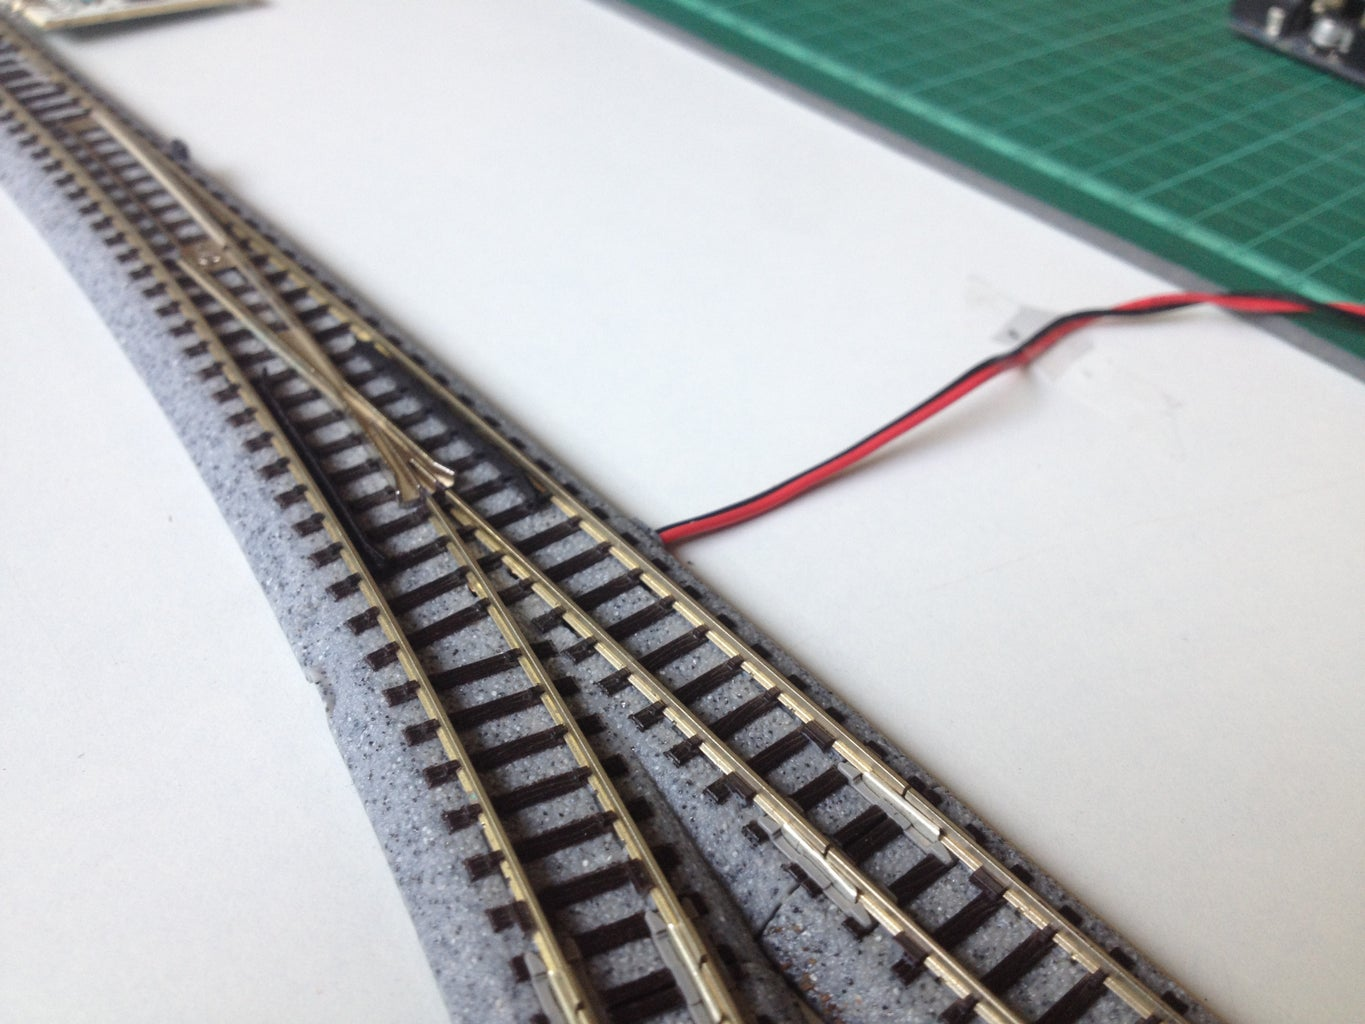 Connect the Track Power Feeder and the Turnout Wires to the Motor Shield